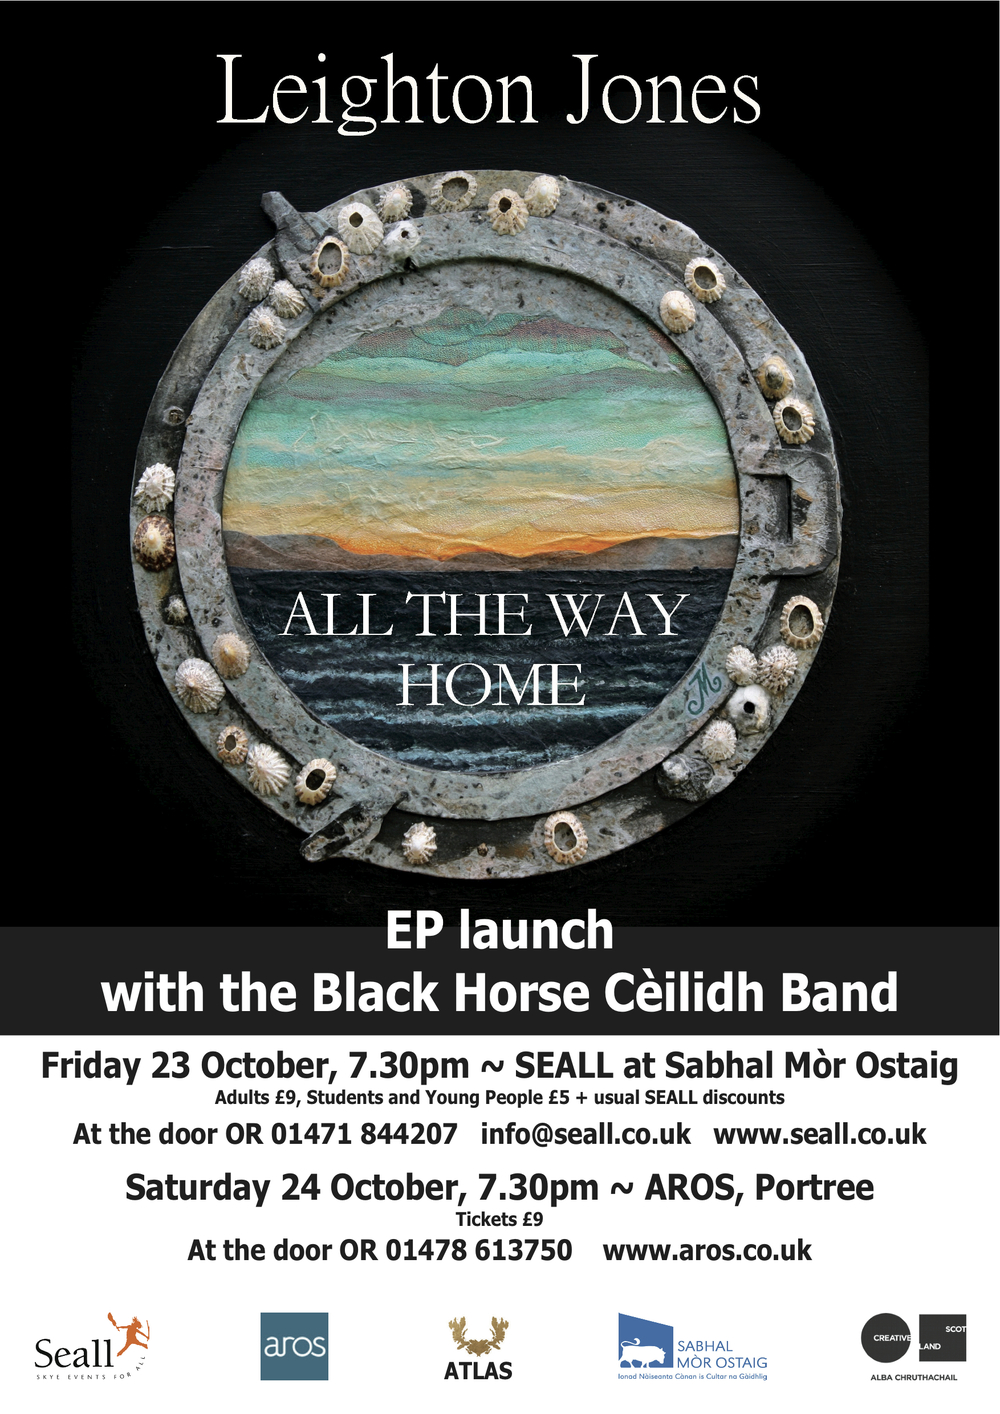 All The Way Home EP Launch Poster